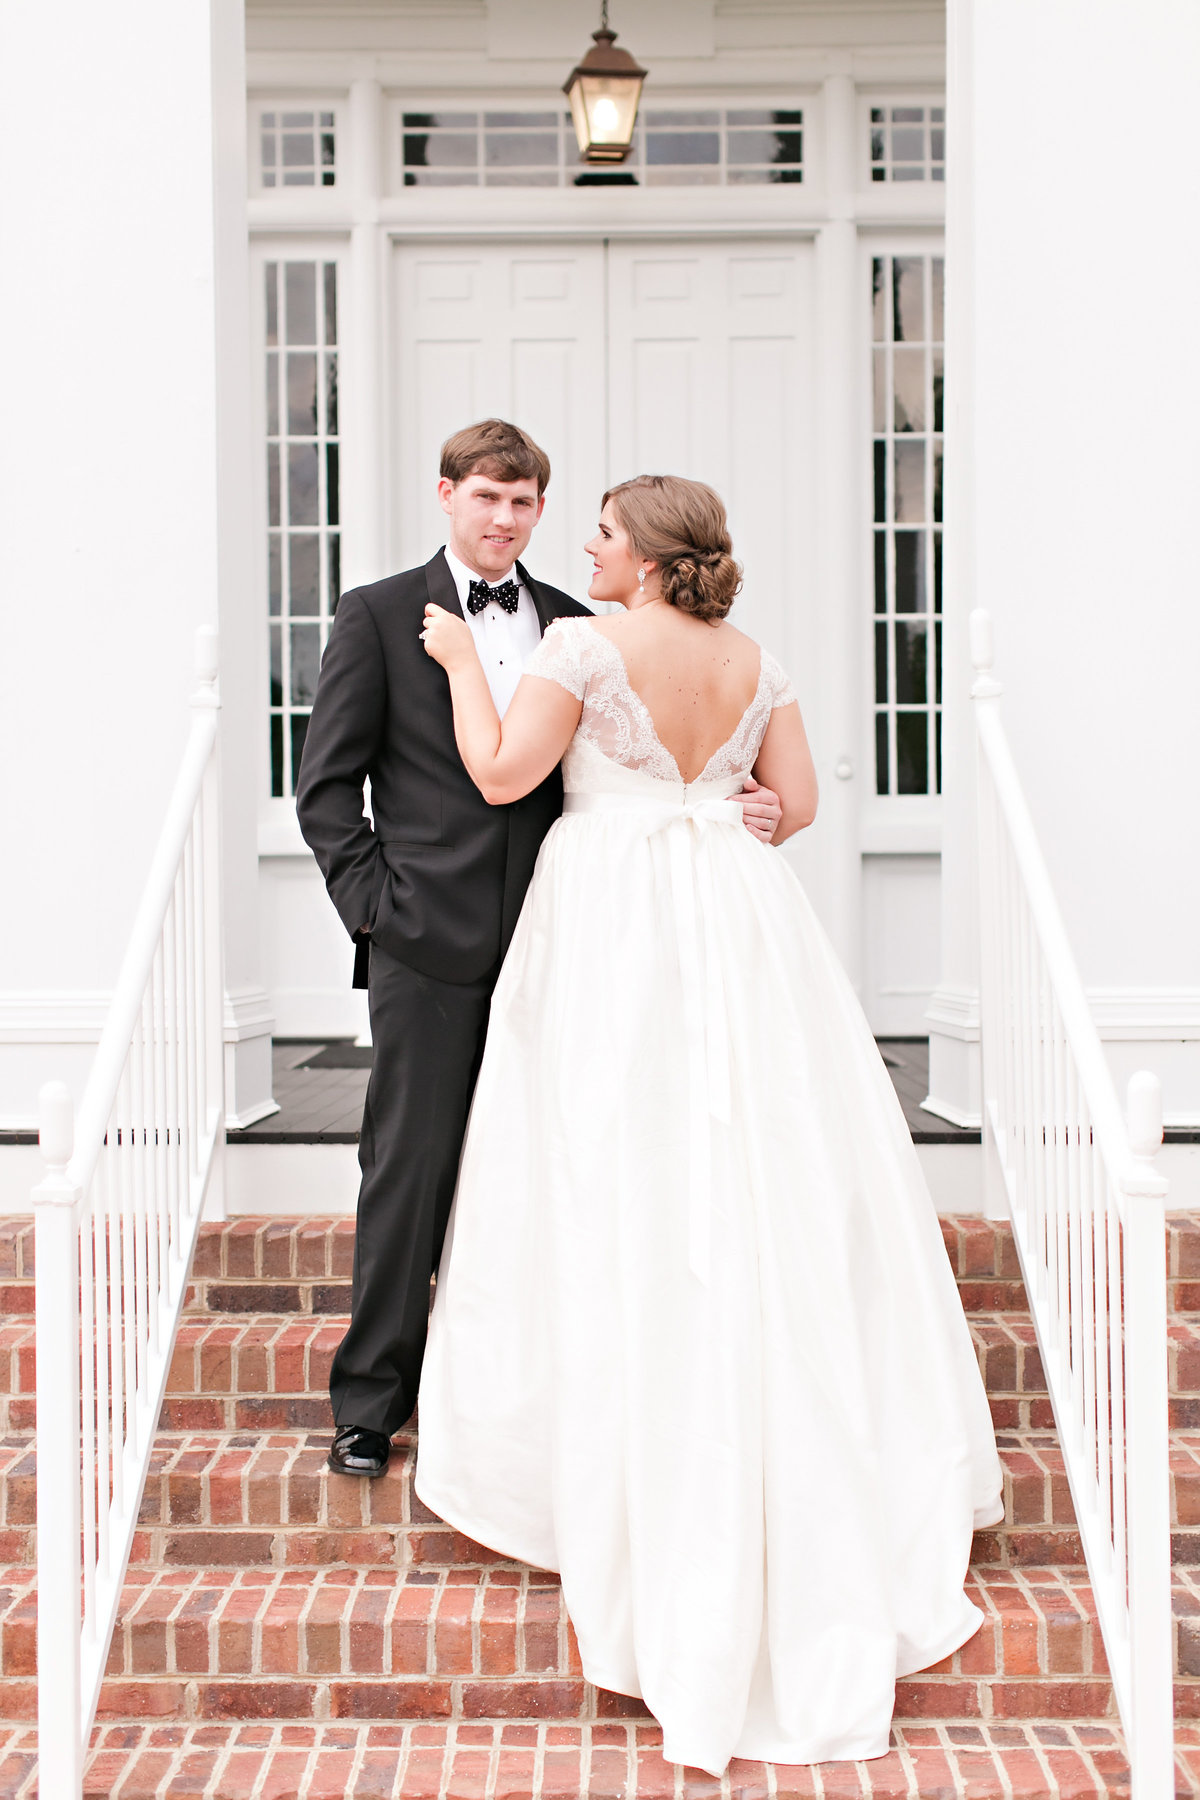 Kayla&Thomas_WEDDING-595